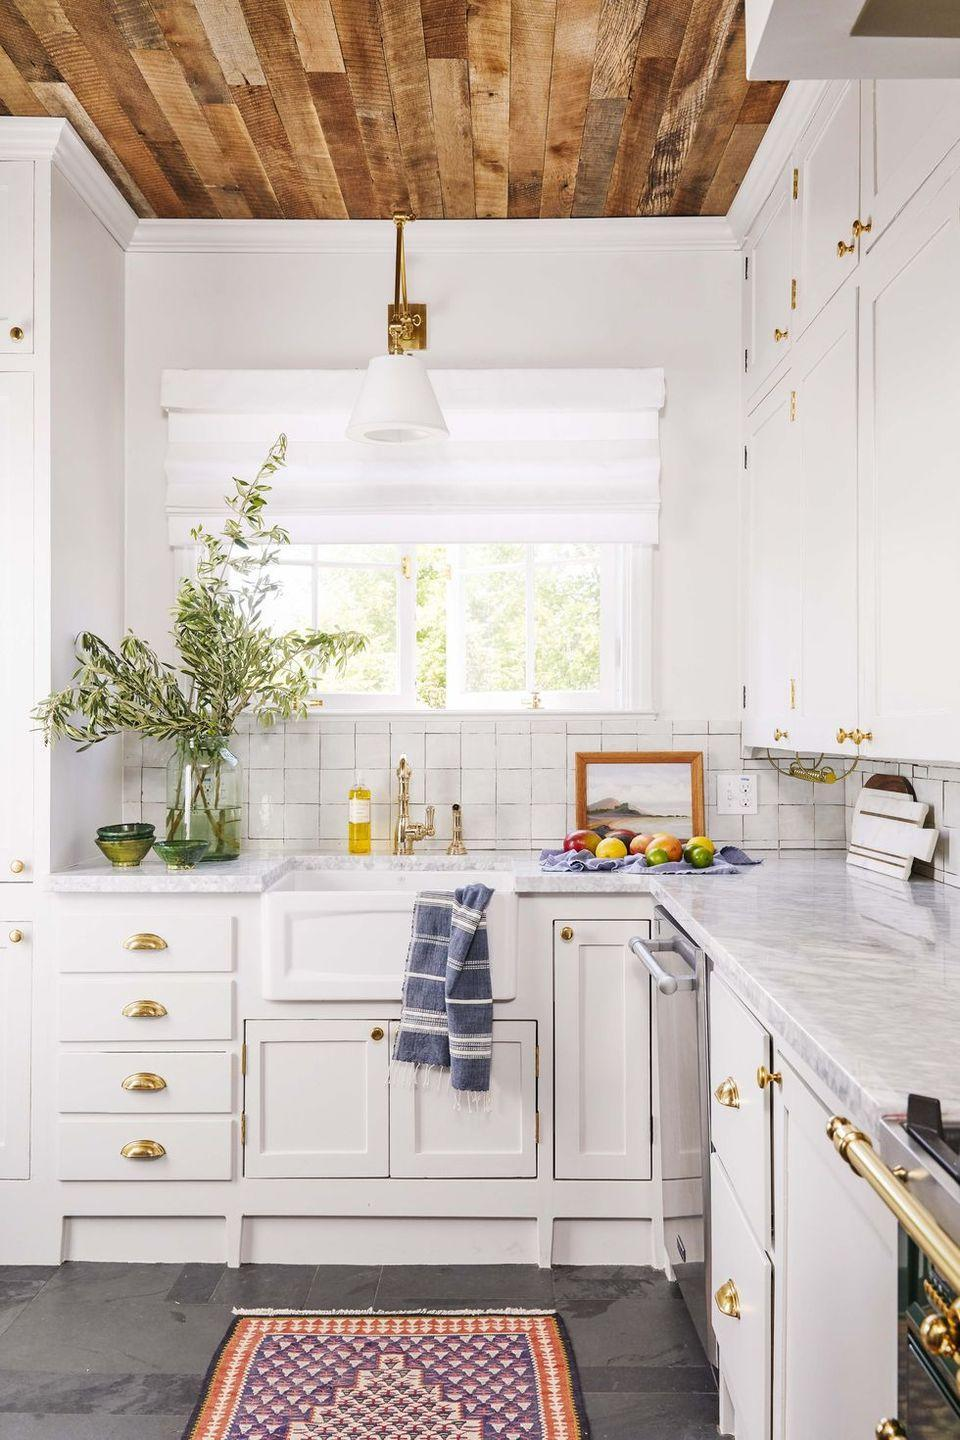 """<p>Designer <a href=""""https://murphydeesign.com/"""" rel=""""nofollow noopener"""" target=""""_blank"""" data-ylk=""""slk:Dee Murphy"""" class=""""link rapid-noclick-resp"""">Dee Murphy</a> gave her family kitchen a new life by repainting the cabinets, swapping out hardware, installing task lighting, and sprucing up the window treatments. But what really makes it feel homey and historied are the unique and handmade qualities of the surfaces, from the zellige tile backsplash to the stone tile floors and rustic wood paneled ceiling. The variation in the wood panels brings so much character. </p>"""